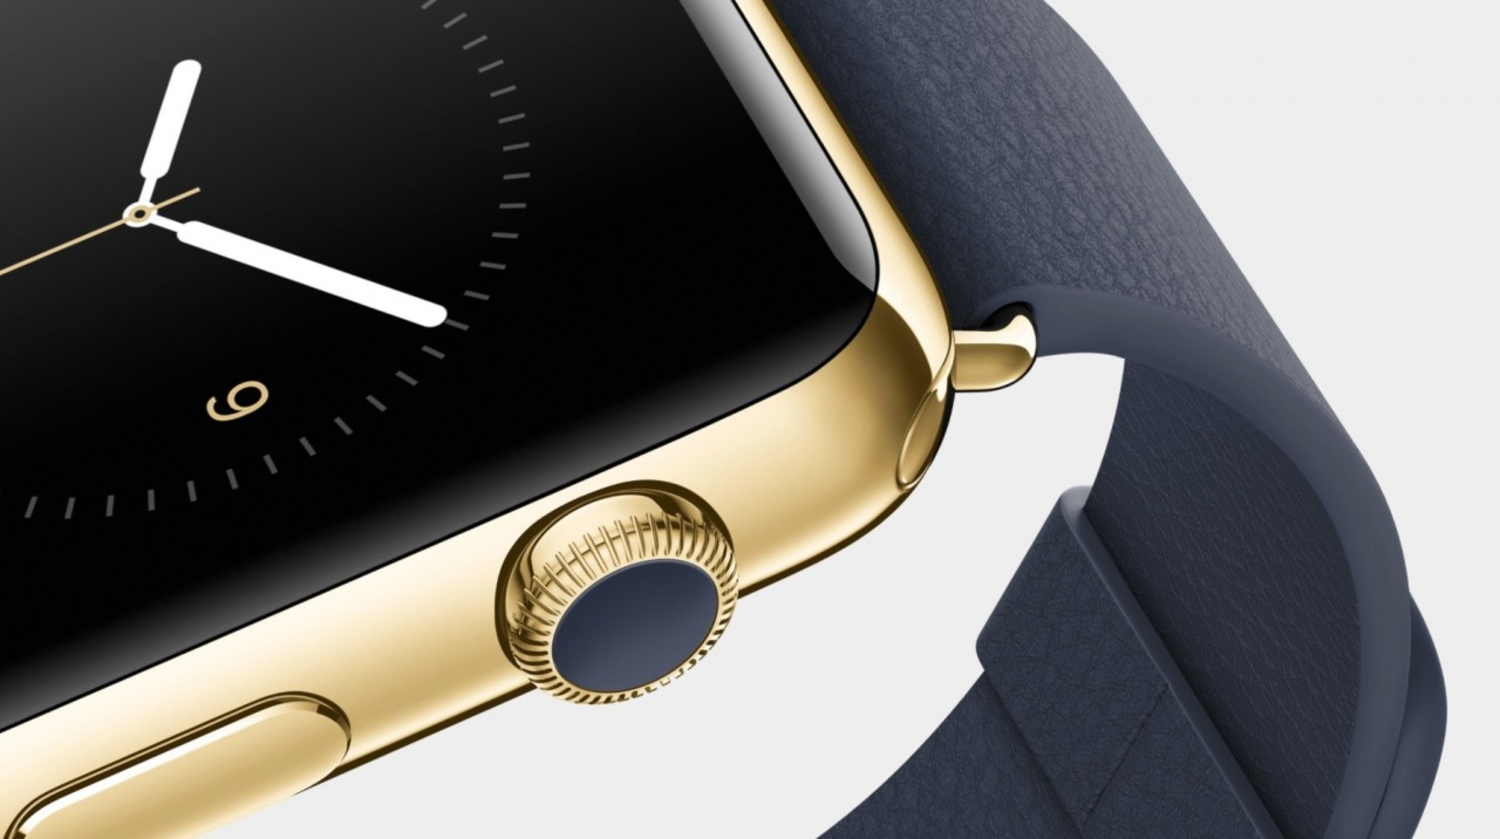 Is The Apple Watch Here To Stay?